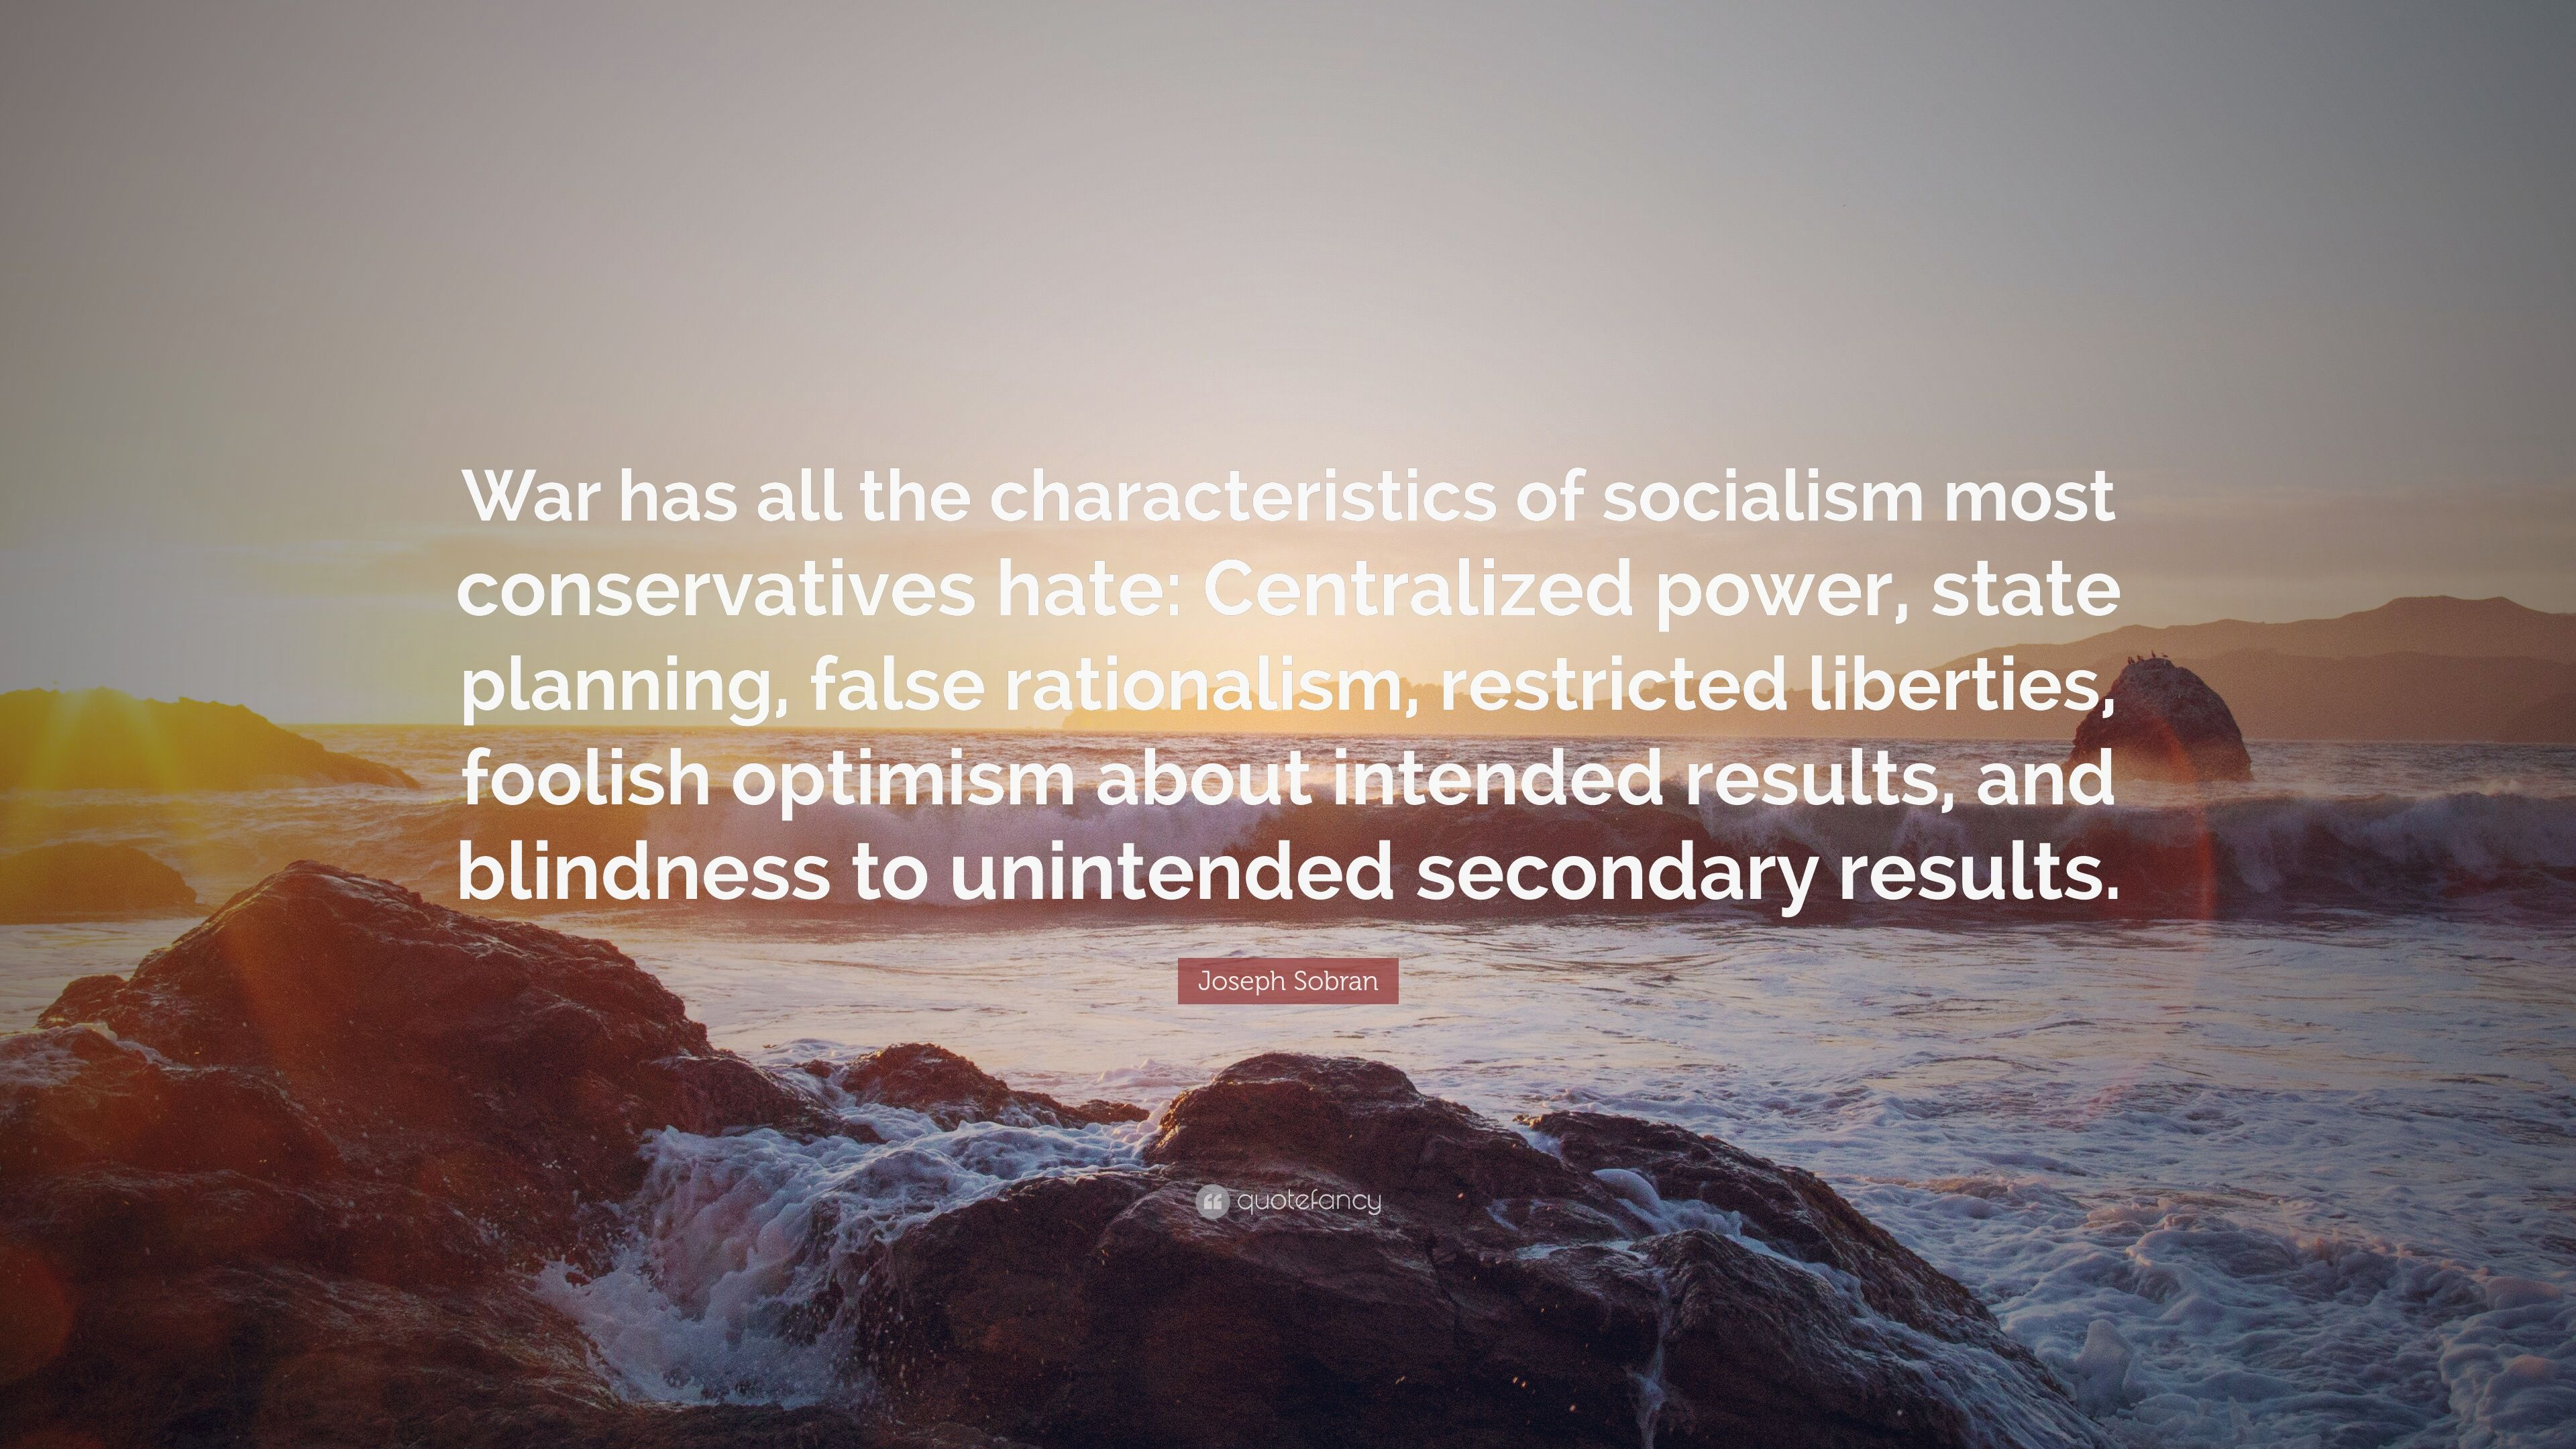 """7 Wallpapers Planning Most Sobran Quotefancy Quote - Joseph Hate False Centralized Has """"war The Rationali Power Of Characteristics Socialism State """" Conservatives All"""